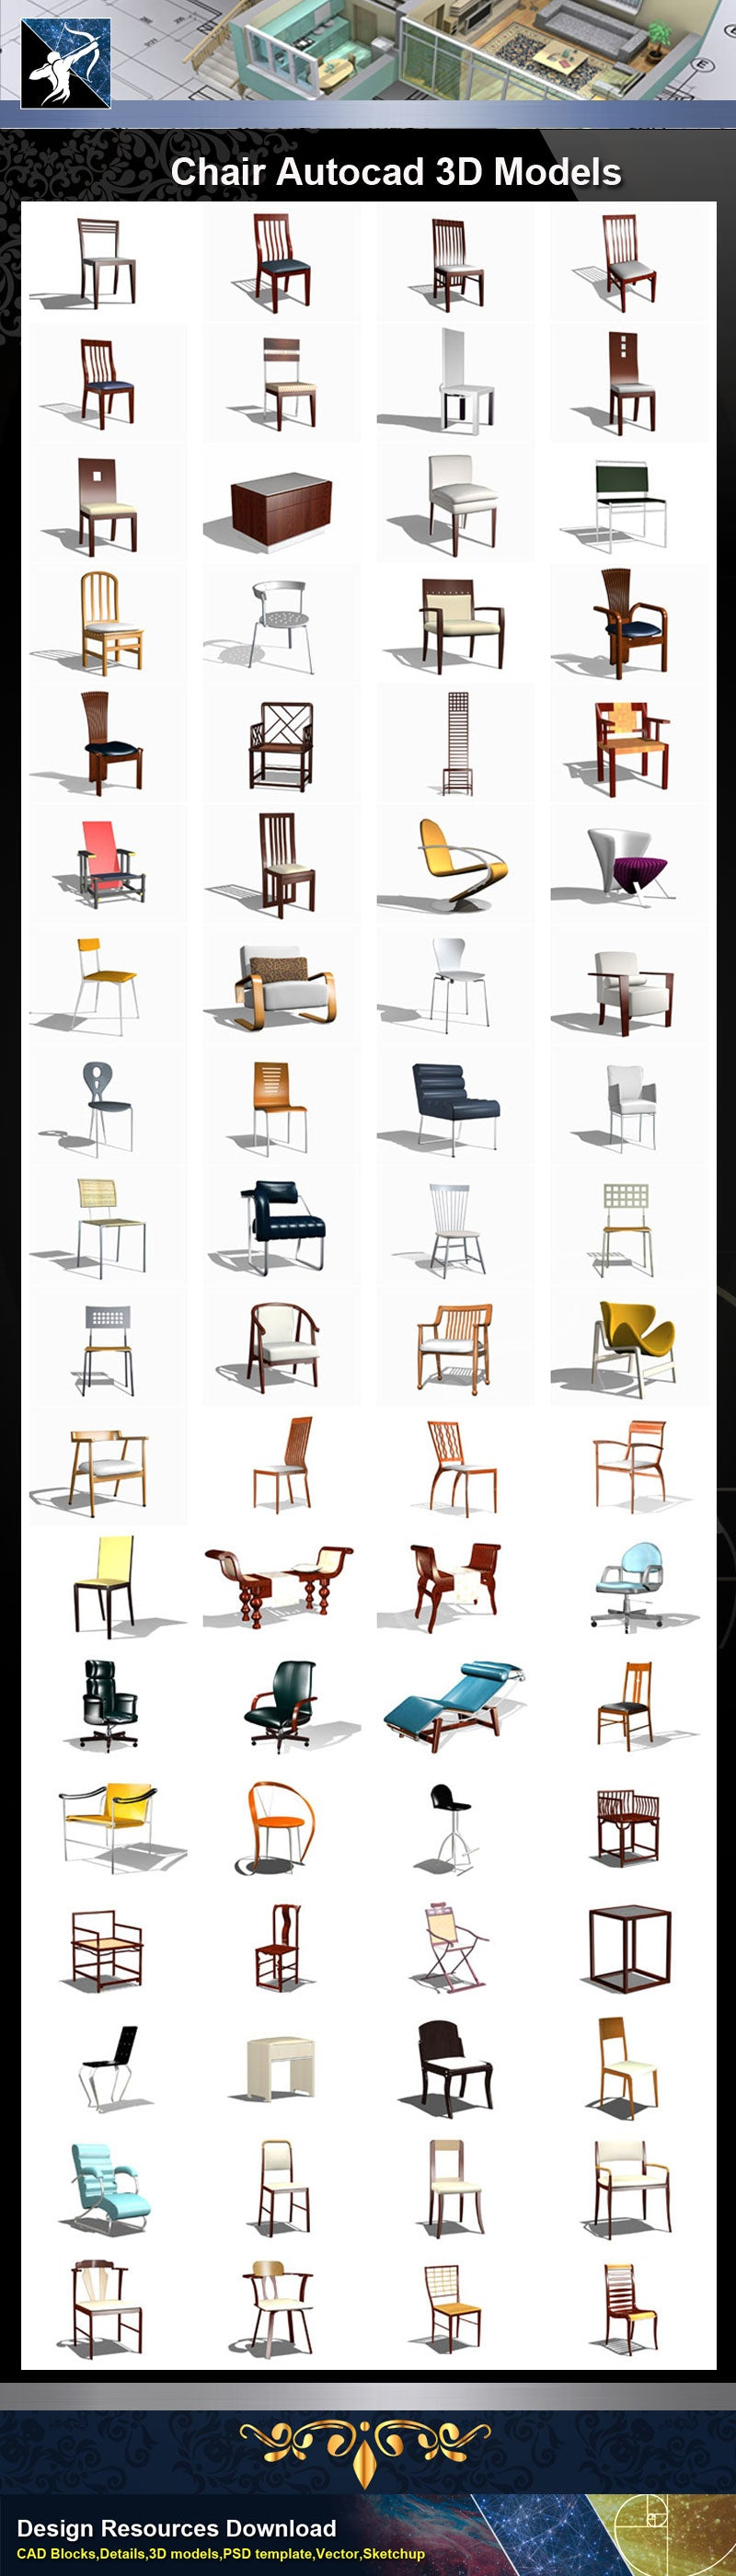 ★AutoCAD 3D Models-Chair Autocad 3D Models